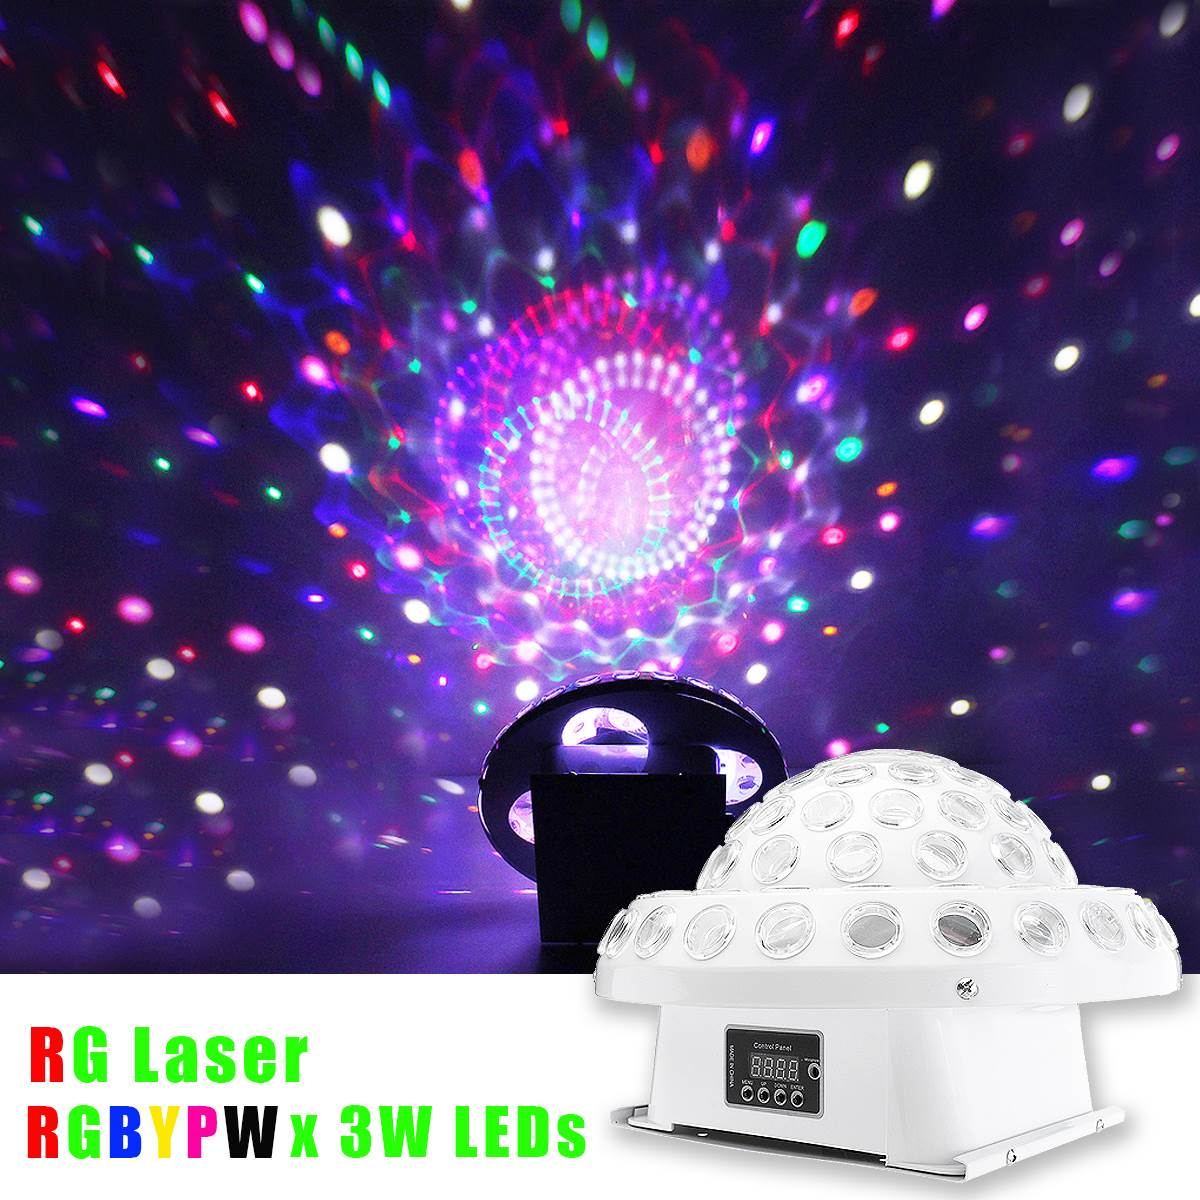 Big LED Magic Crystal Ball RGB Stage Lighting Effect DMX Remote Control Laser Light Night Lamp Disco DJ Club Bar KTV Party Decor mini rgb led crystal magic ball stage effect lighting lamp bulb party disco club dj light show lumiere